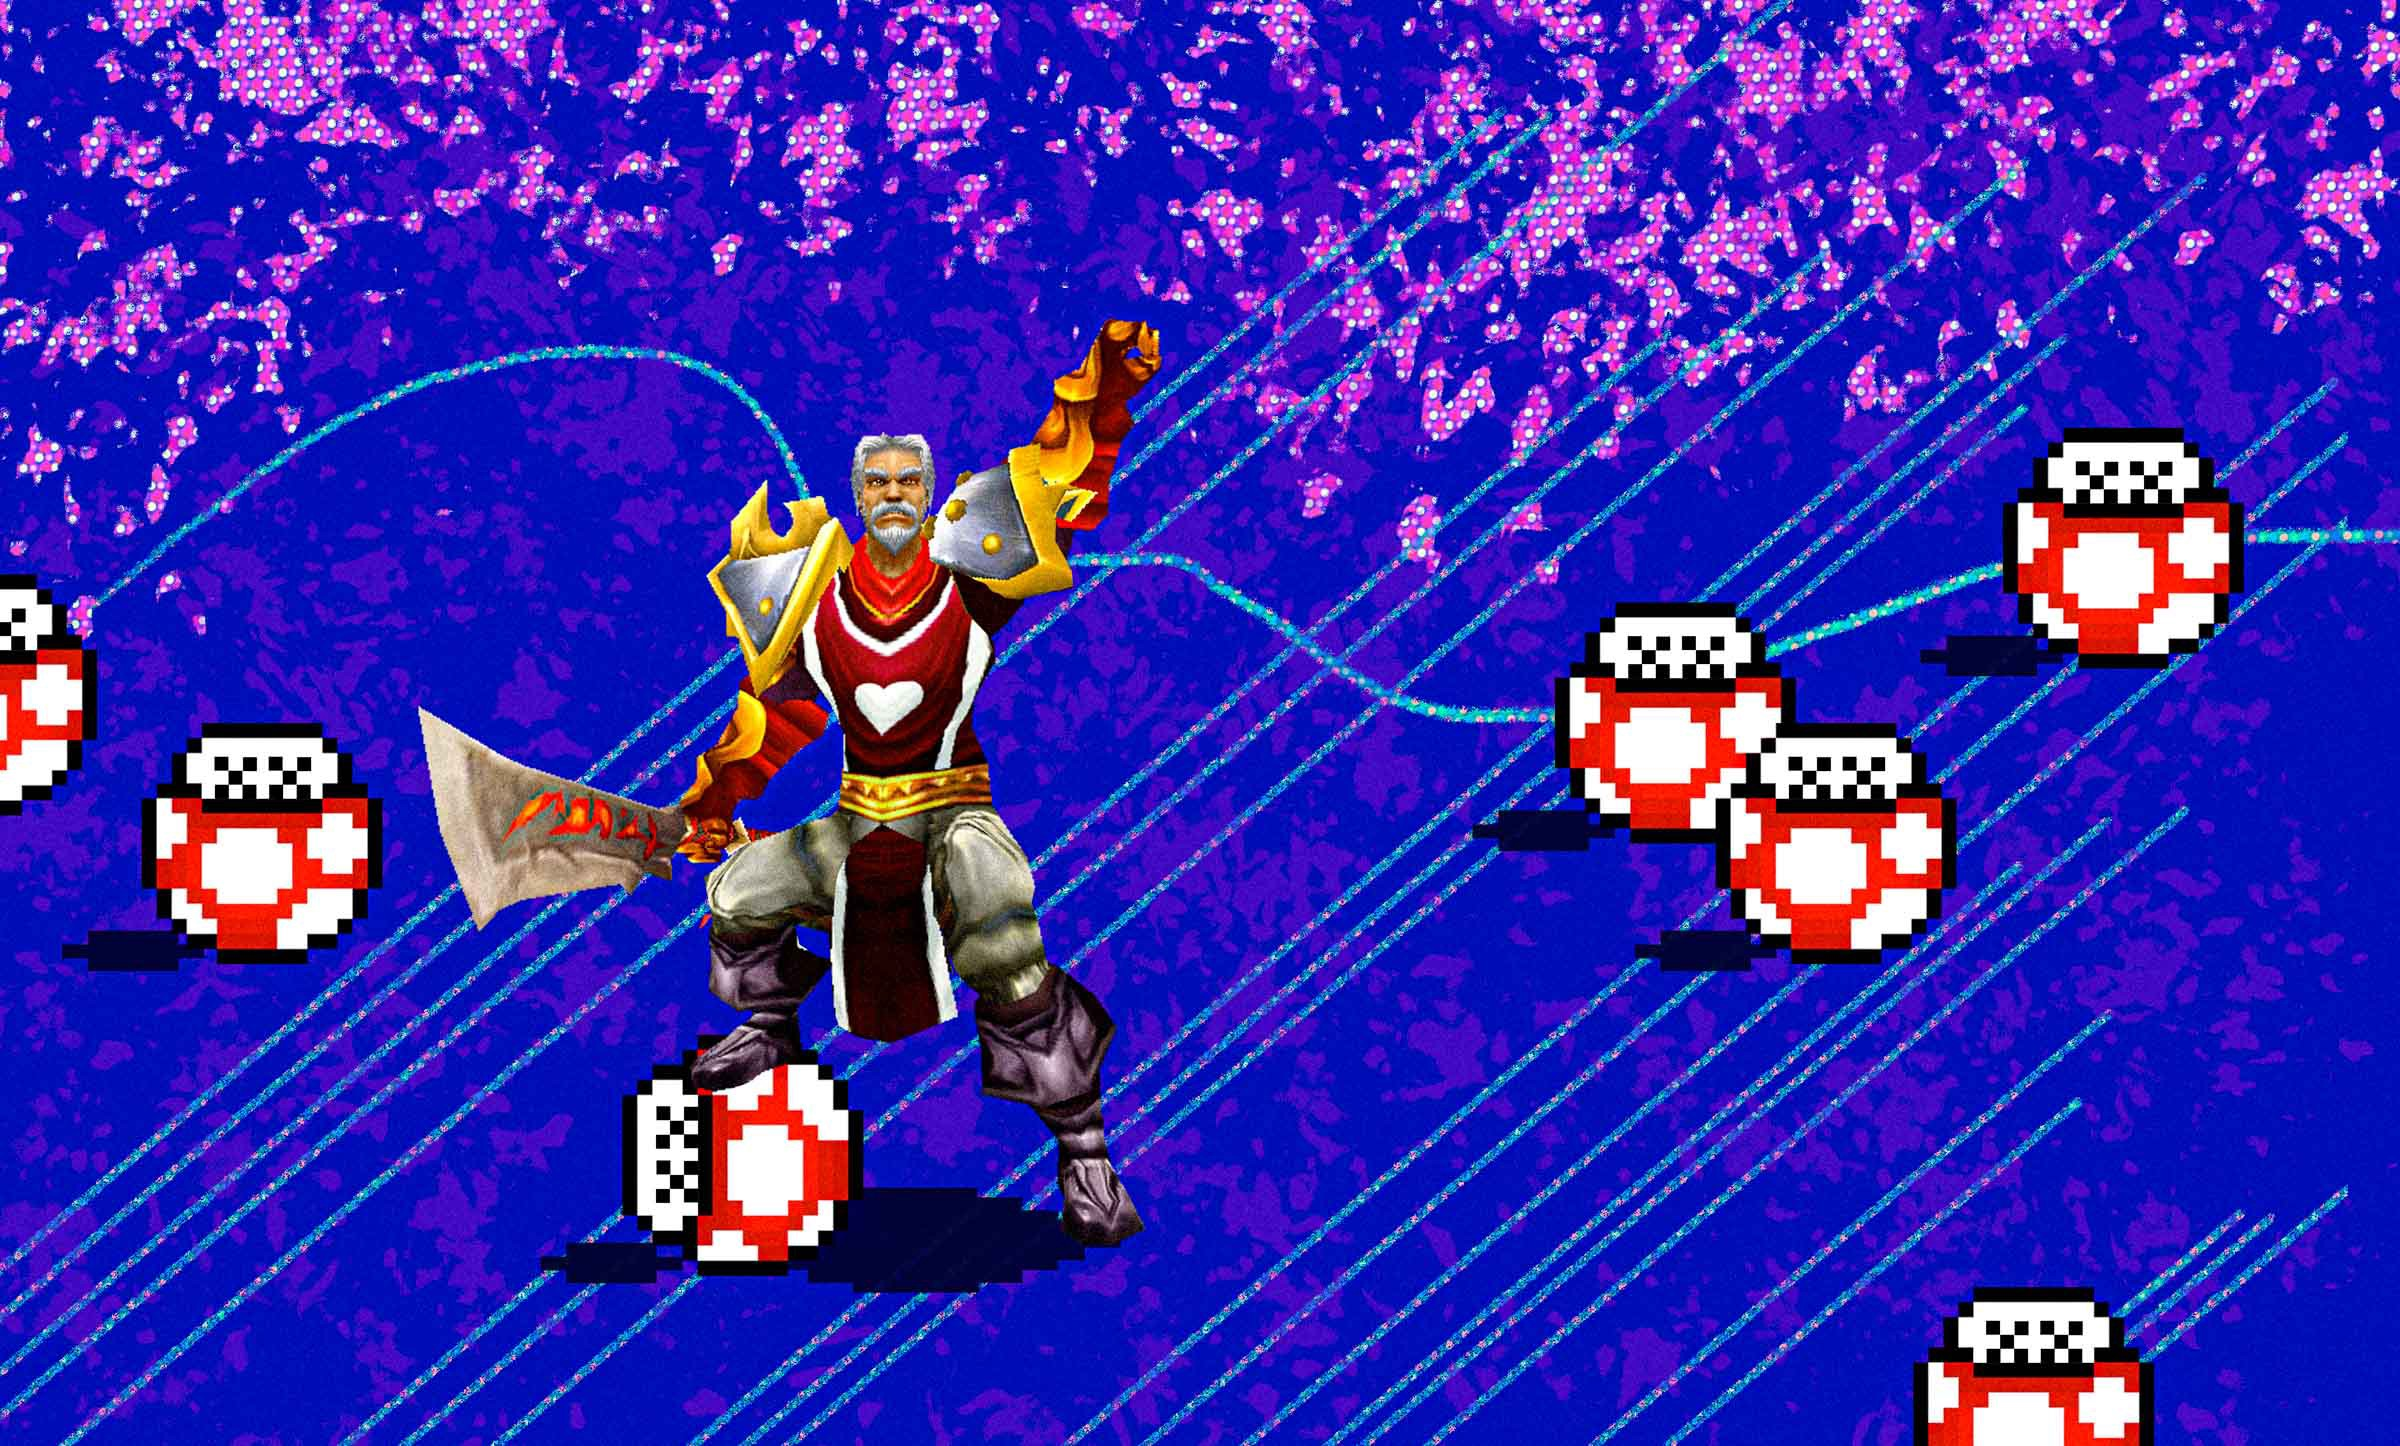 A video game character clad in armor holding up a hand in victory while one foot rests on one of many animated mushrooms reminiscent of Mario video games. The outline of a mountain appears over a bright blue background.